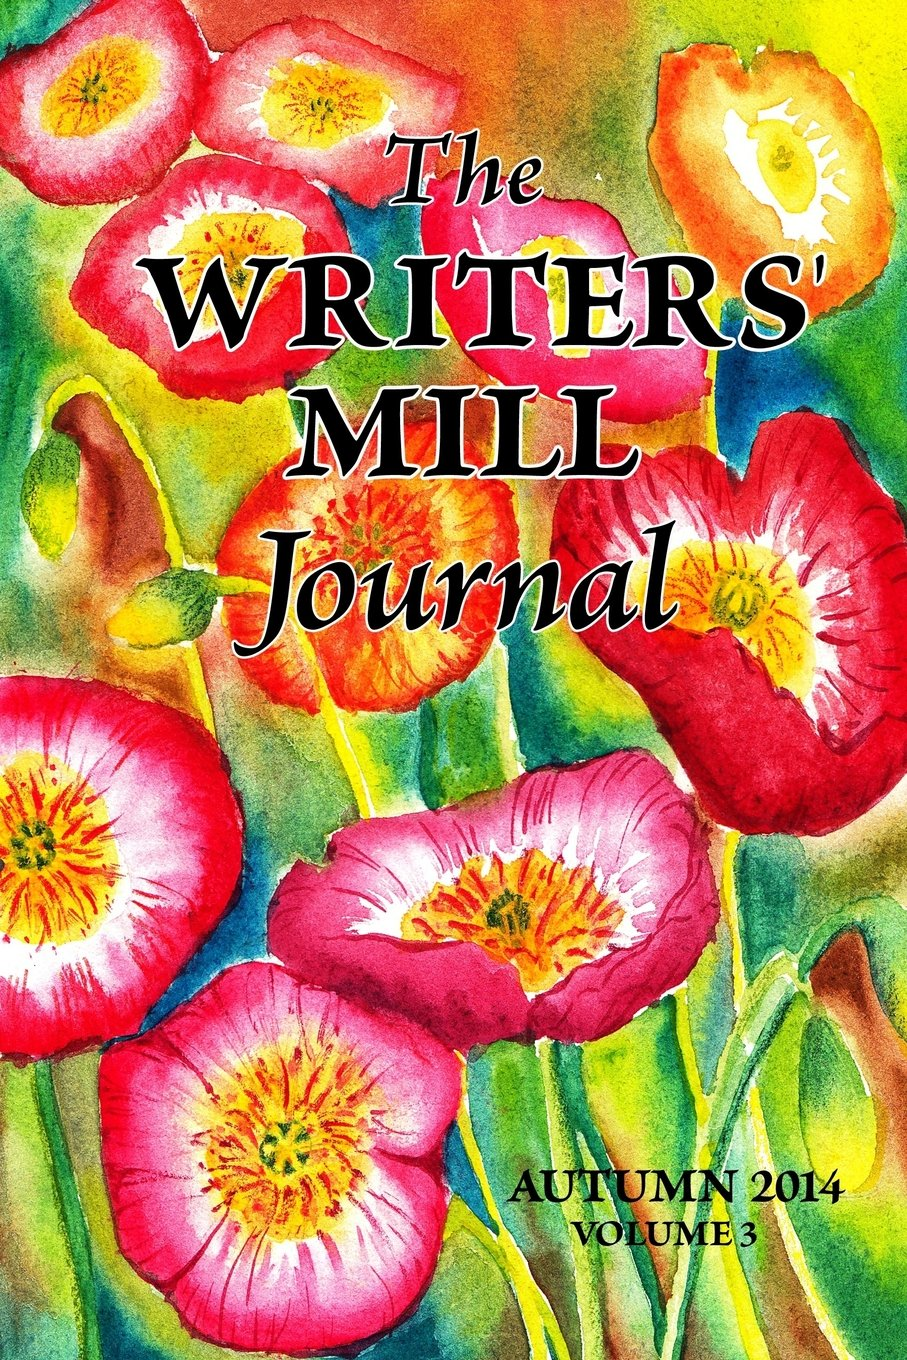 The Writers' Mill Journal Volume 3